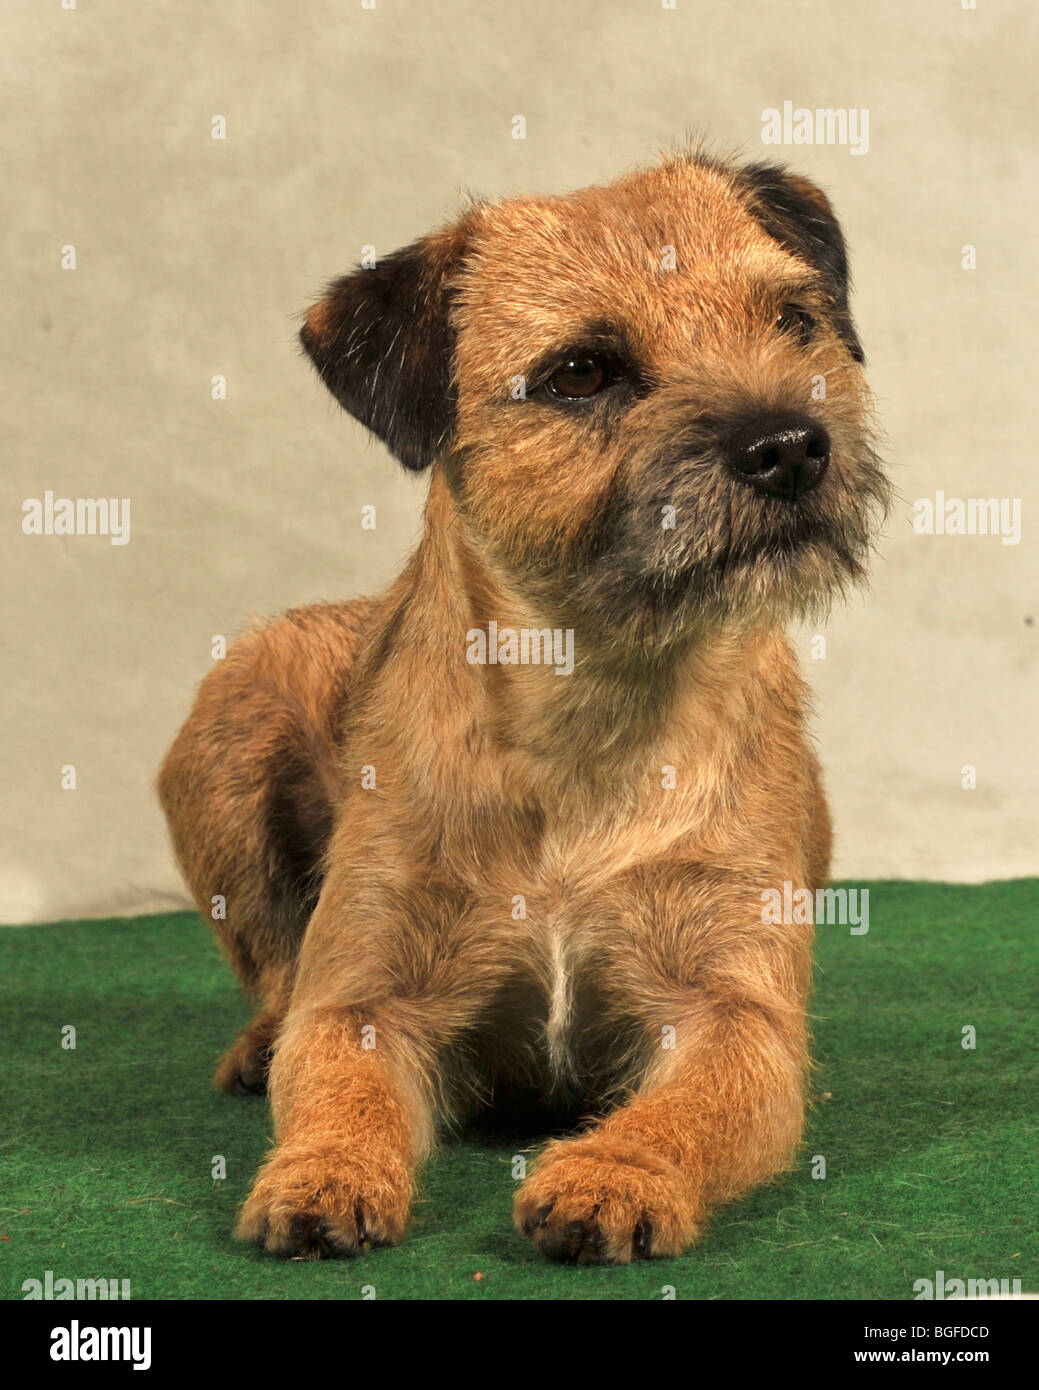 border terrier dog - Stock Image